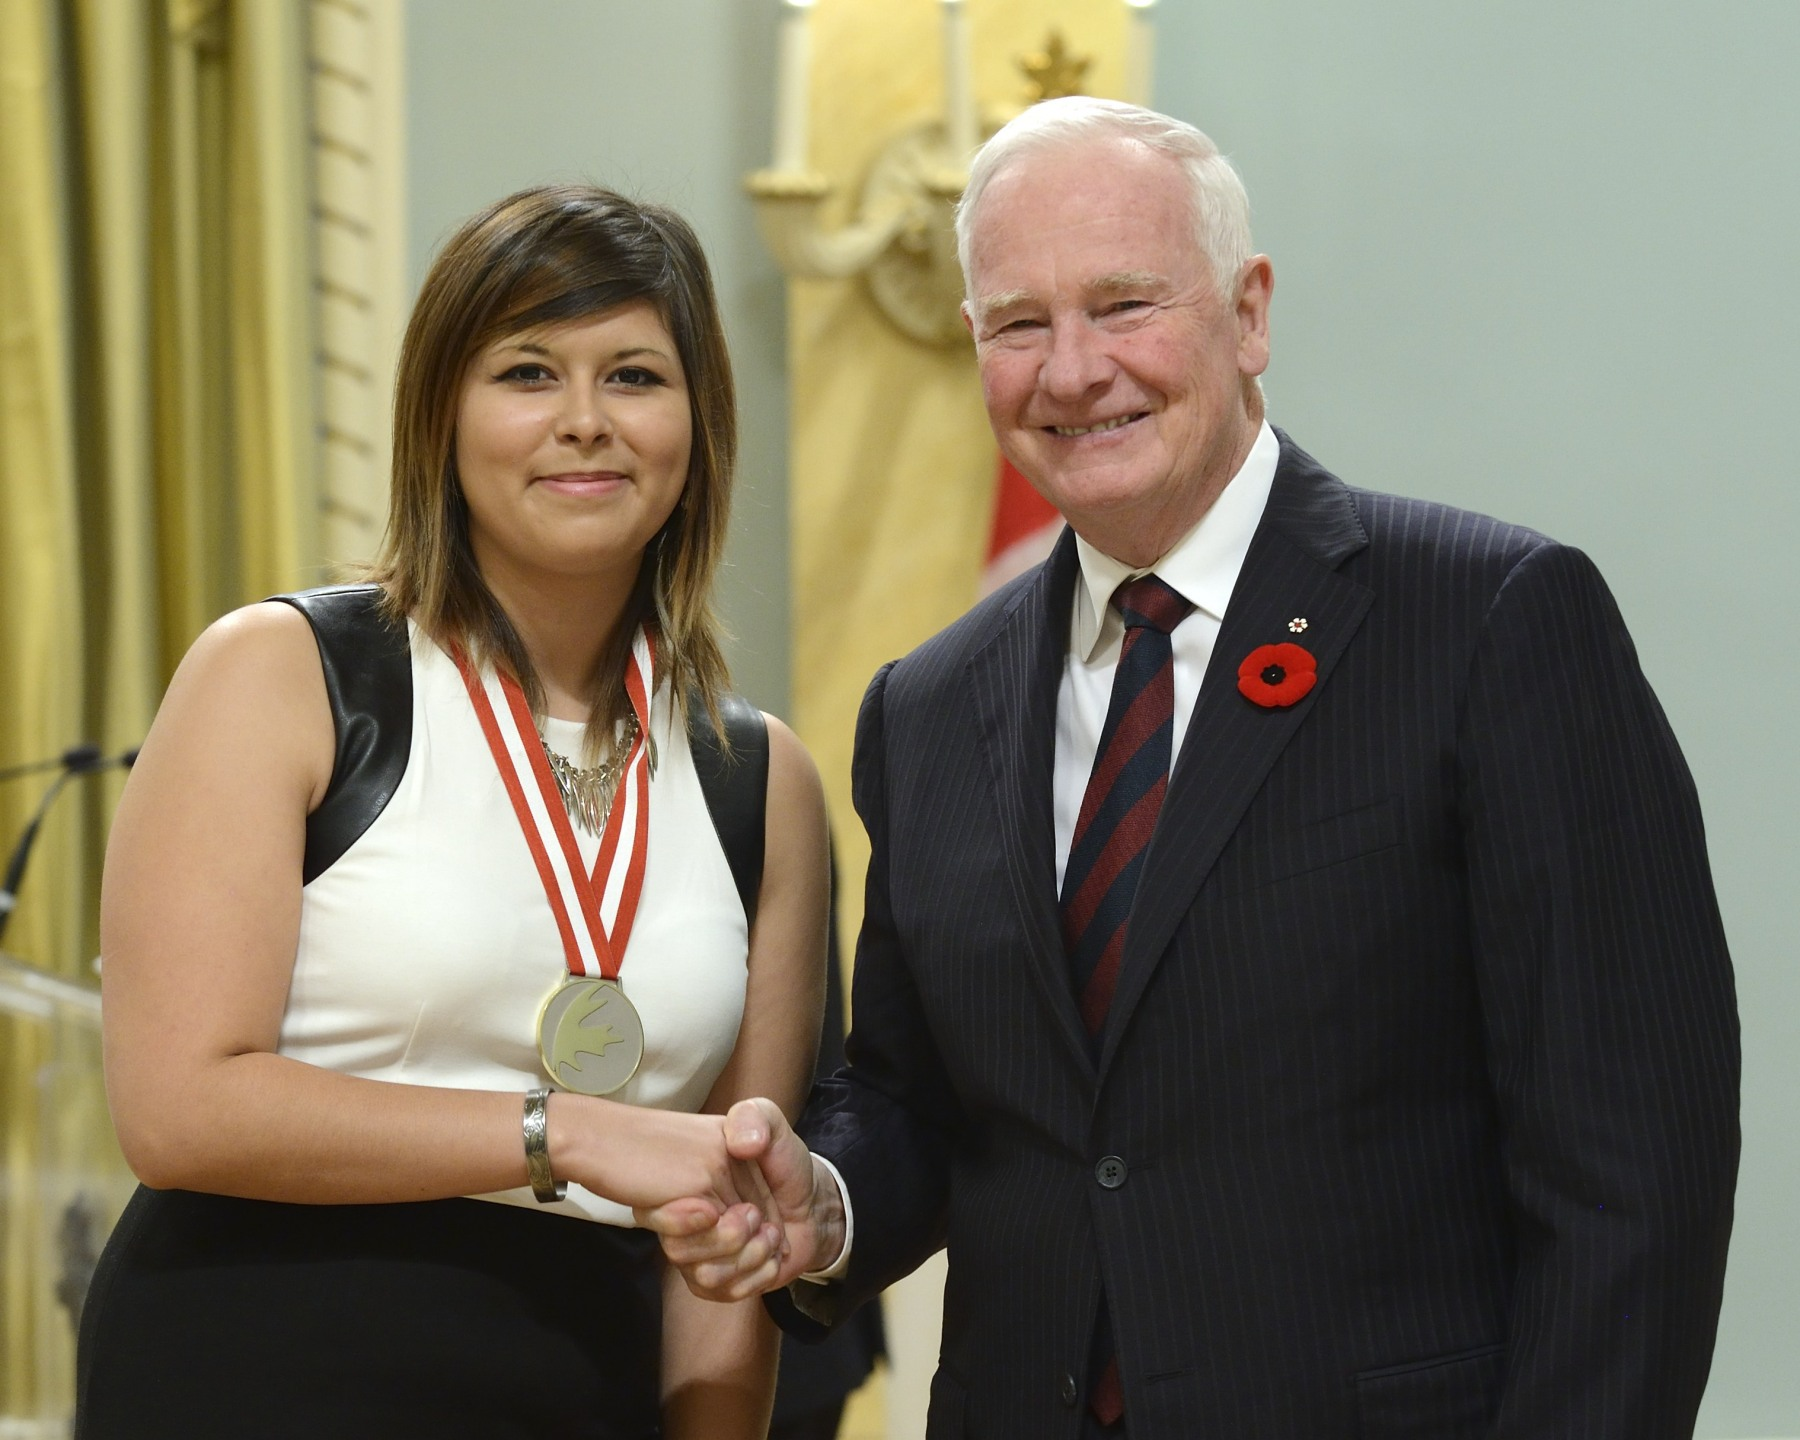 Mercedes Sandy, of Christian Island, Ontario, received the award for Aboriginal Arts & Stories.